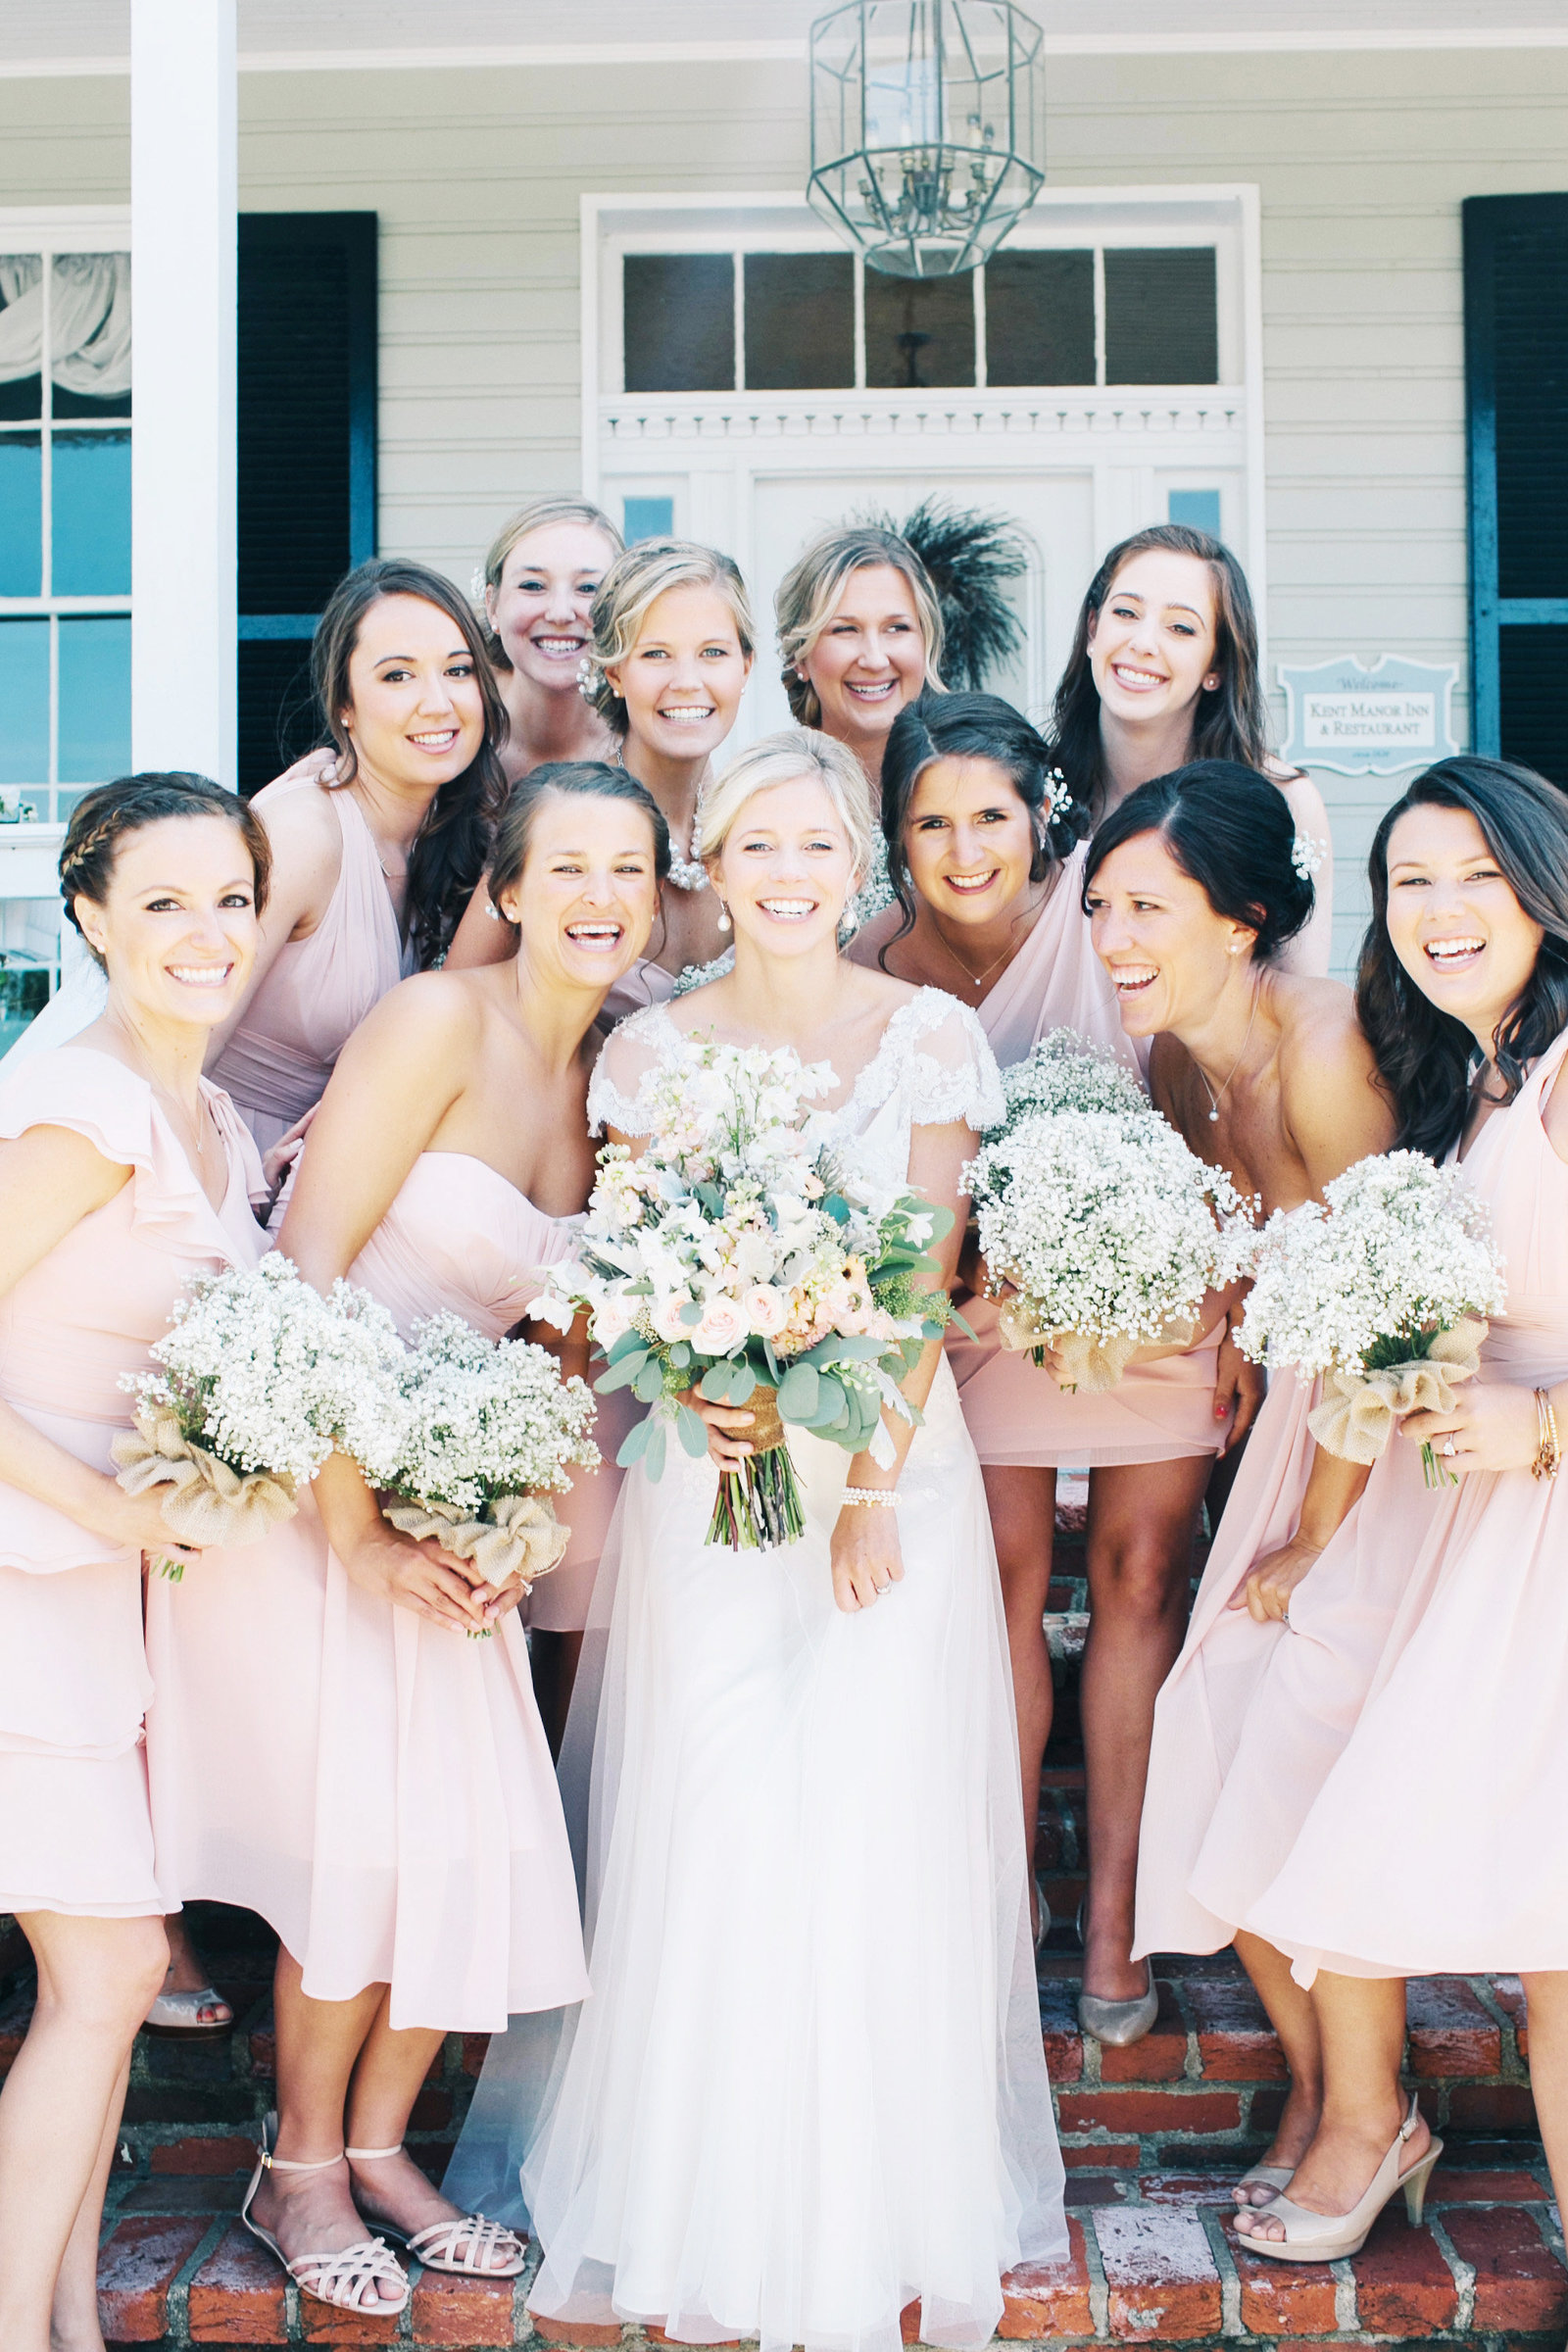 269Kelly_Brett_WeddingIMG_0395